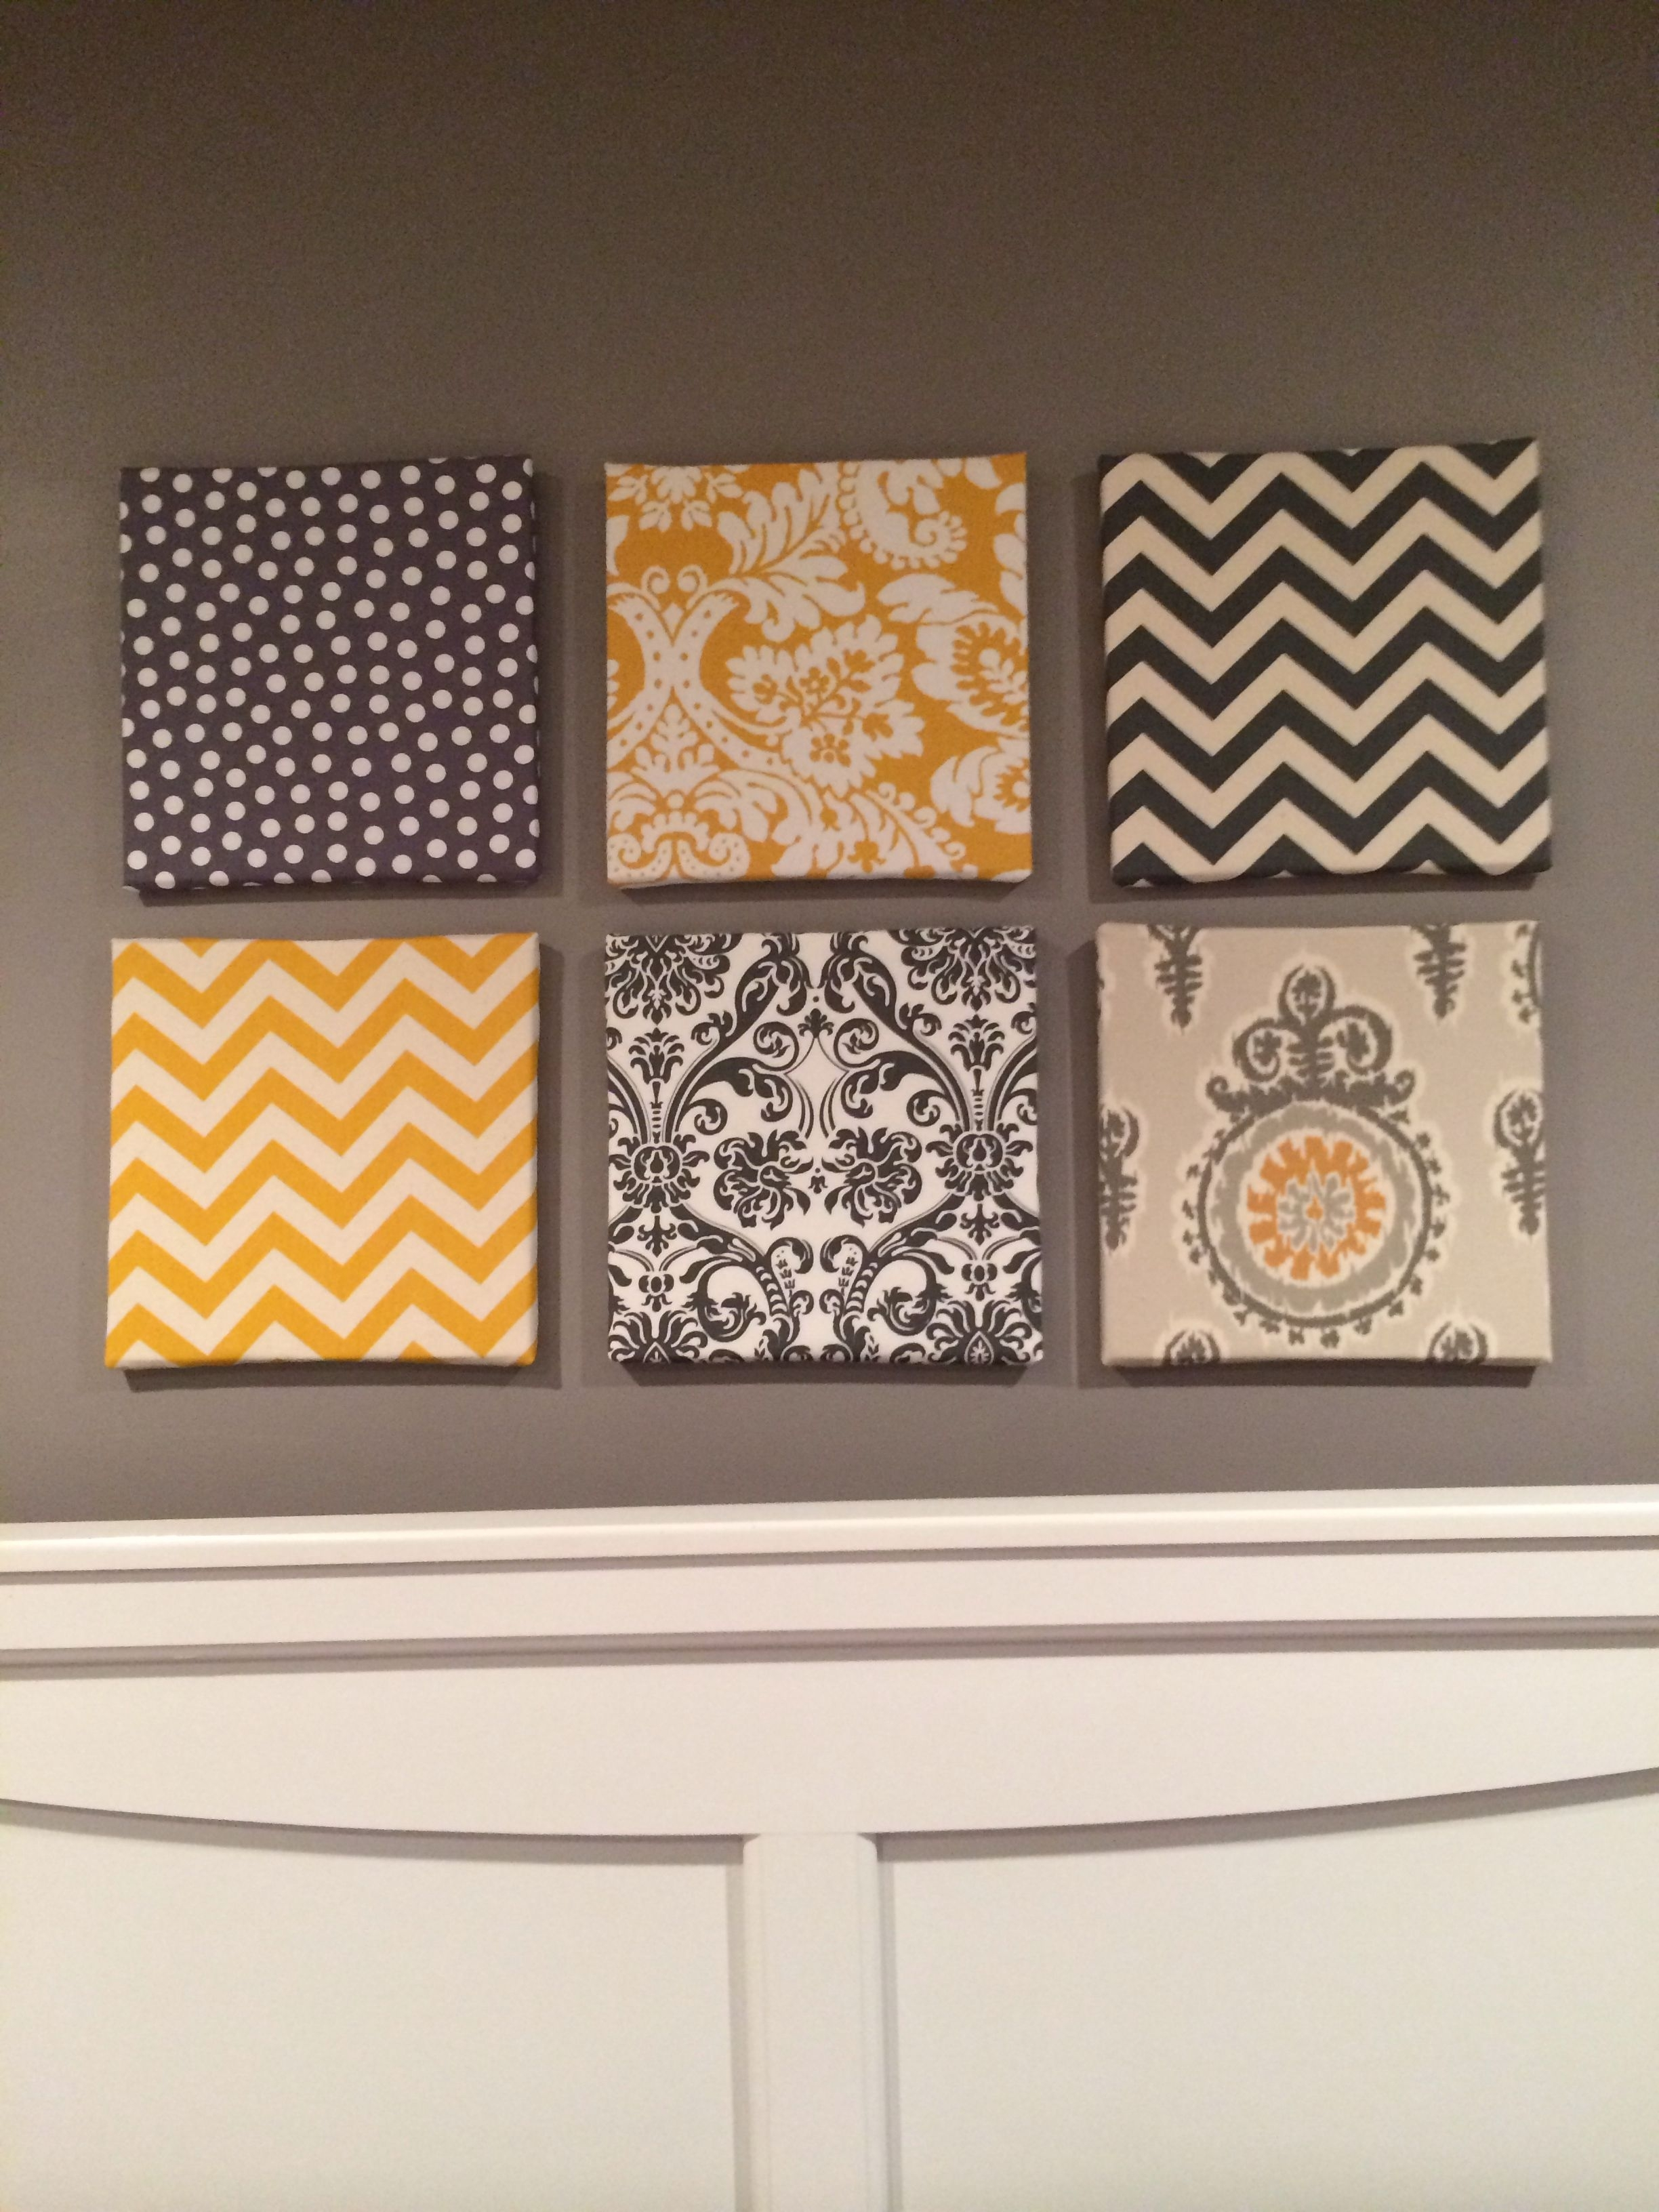 My Fabric Over Canvas Wall Art For My Gray And Yellow Themed Room In Newest Fabric For Canvas Wall Art (View 10 of 15)